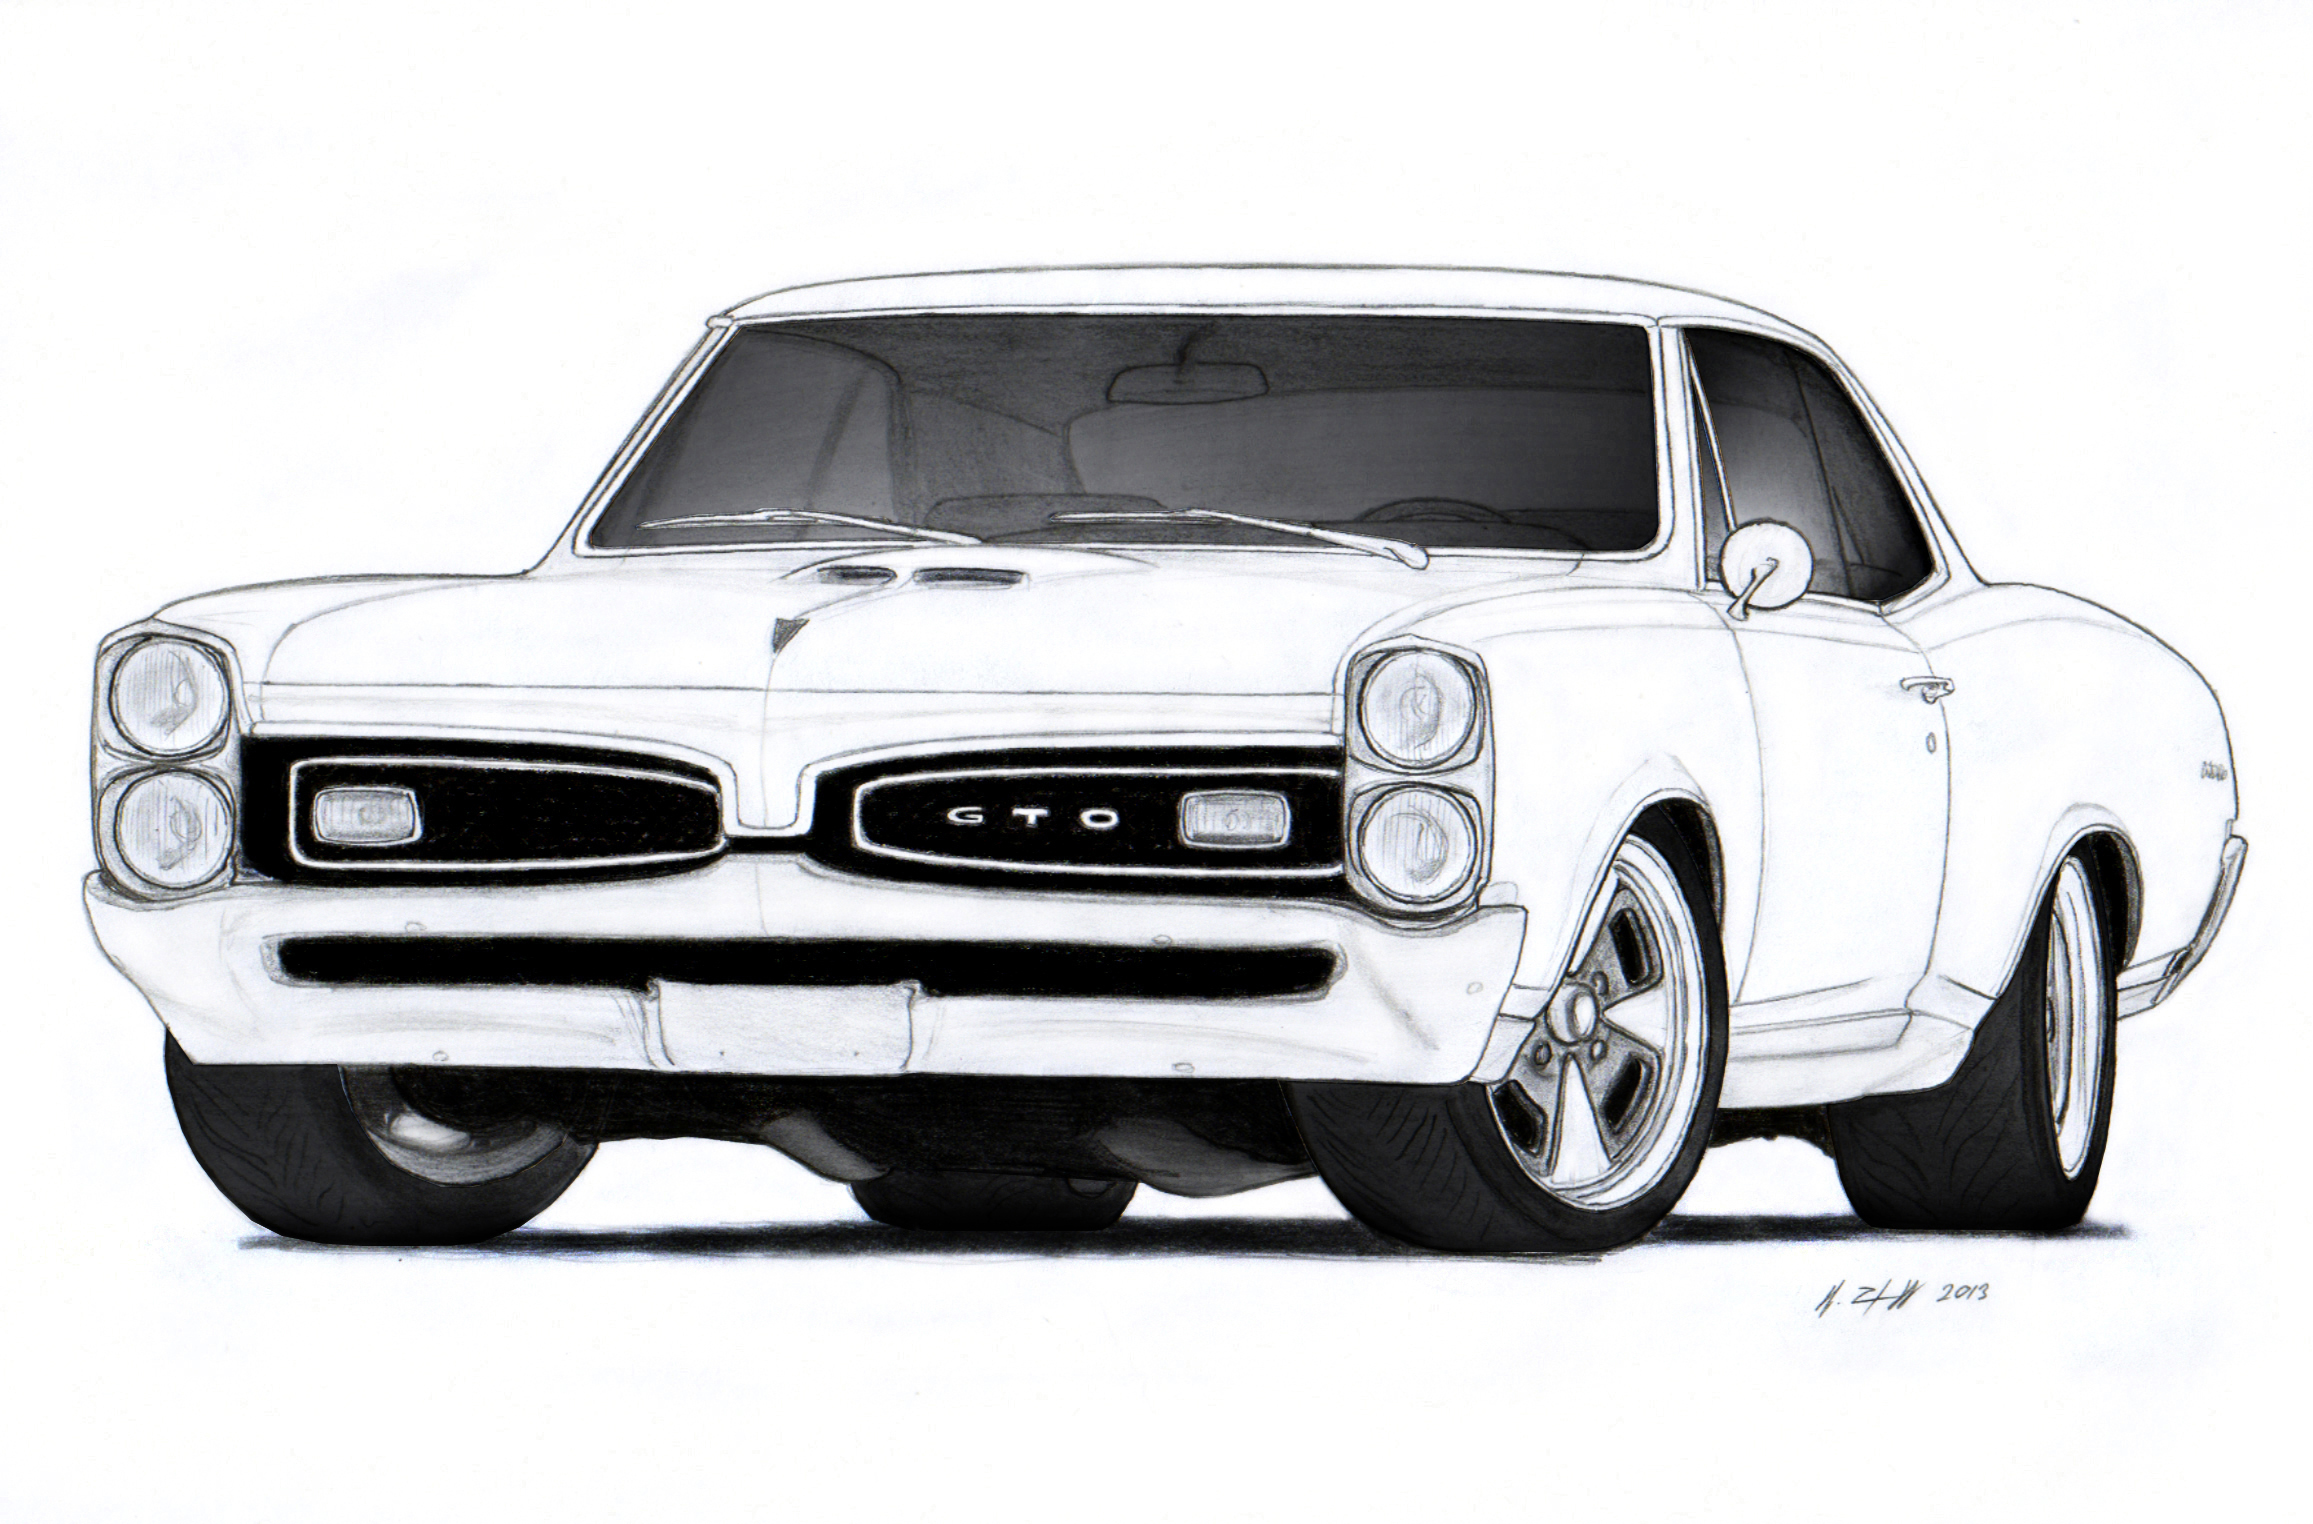 1967 Pontiac GTO Drawing by Vertualissimo on DeviantArt